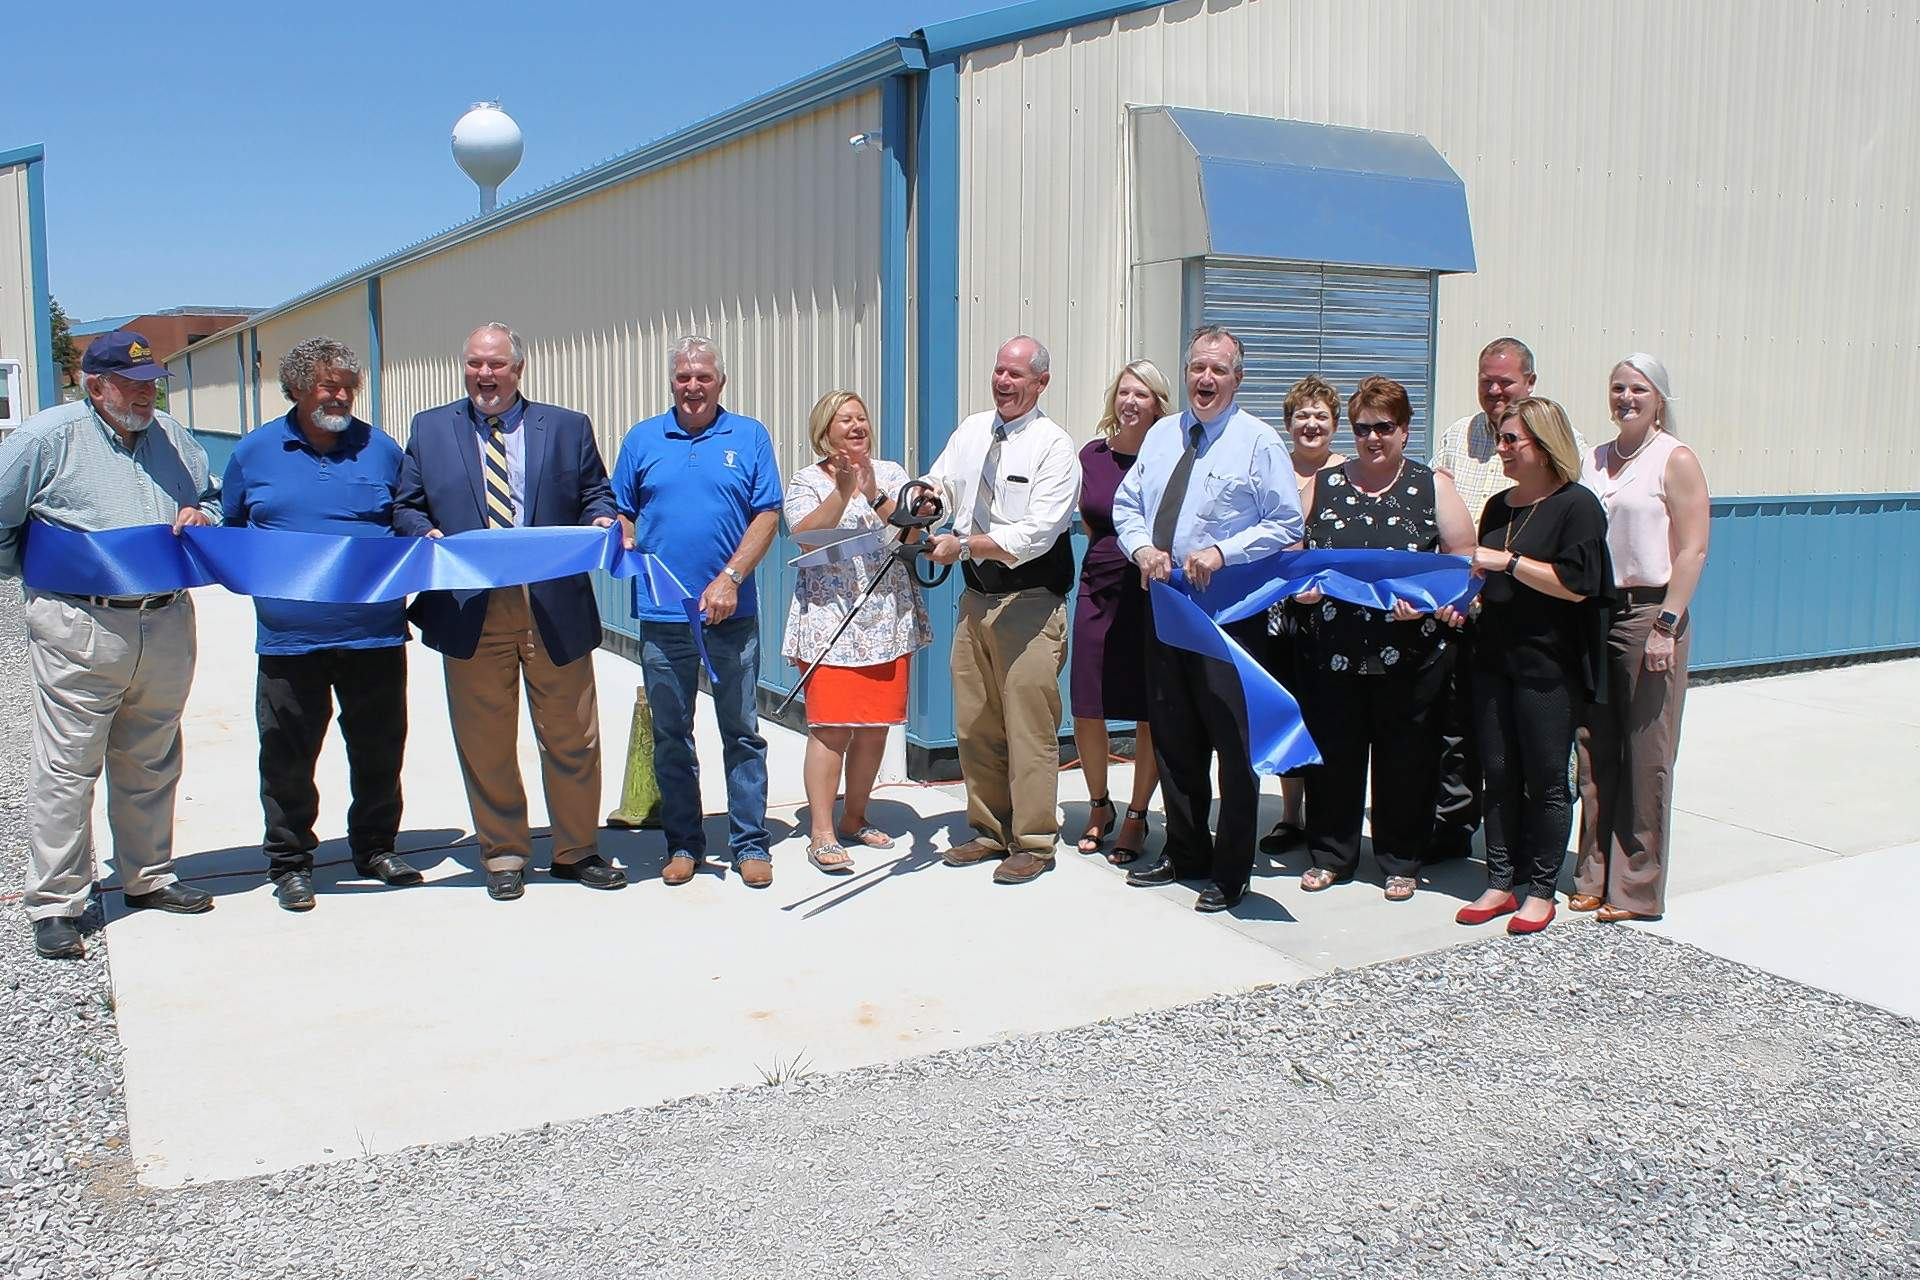 SIC and Illinois Eastern Community Colleges has a grand opening ribbon cutting ceremony for the Simulated Mine Training Facility, which will be used in the Mine Rescue & Skills Competition June 13 and 14. From left, Jim Ellis, SIC Board Secretary; Pat York, SIC board chairman; SIC President Jonah Rice; Bill Patterson, Illinois Office of Mines and Minerals inspector at large; Stacy Wasson, Saline County chamber president; Mike Thomas, IECC dean of Workforce Education; Brandi Bradley, aide to U.S. Sen. Dick Durbin; Terry Bruce, CEO of Illinois Eastern Community Colleges; Lori Cox, SIC associate dean of Workforce Education; Karen Weiss, SIC vice president for Academic Affairs; Scott Stout, Saline County chamber treasurer; Olivia Bradley, chamber past president and Jessica Stephens, chamber secretary.